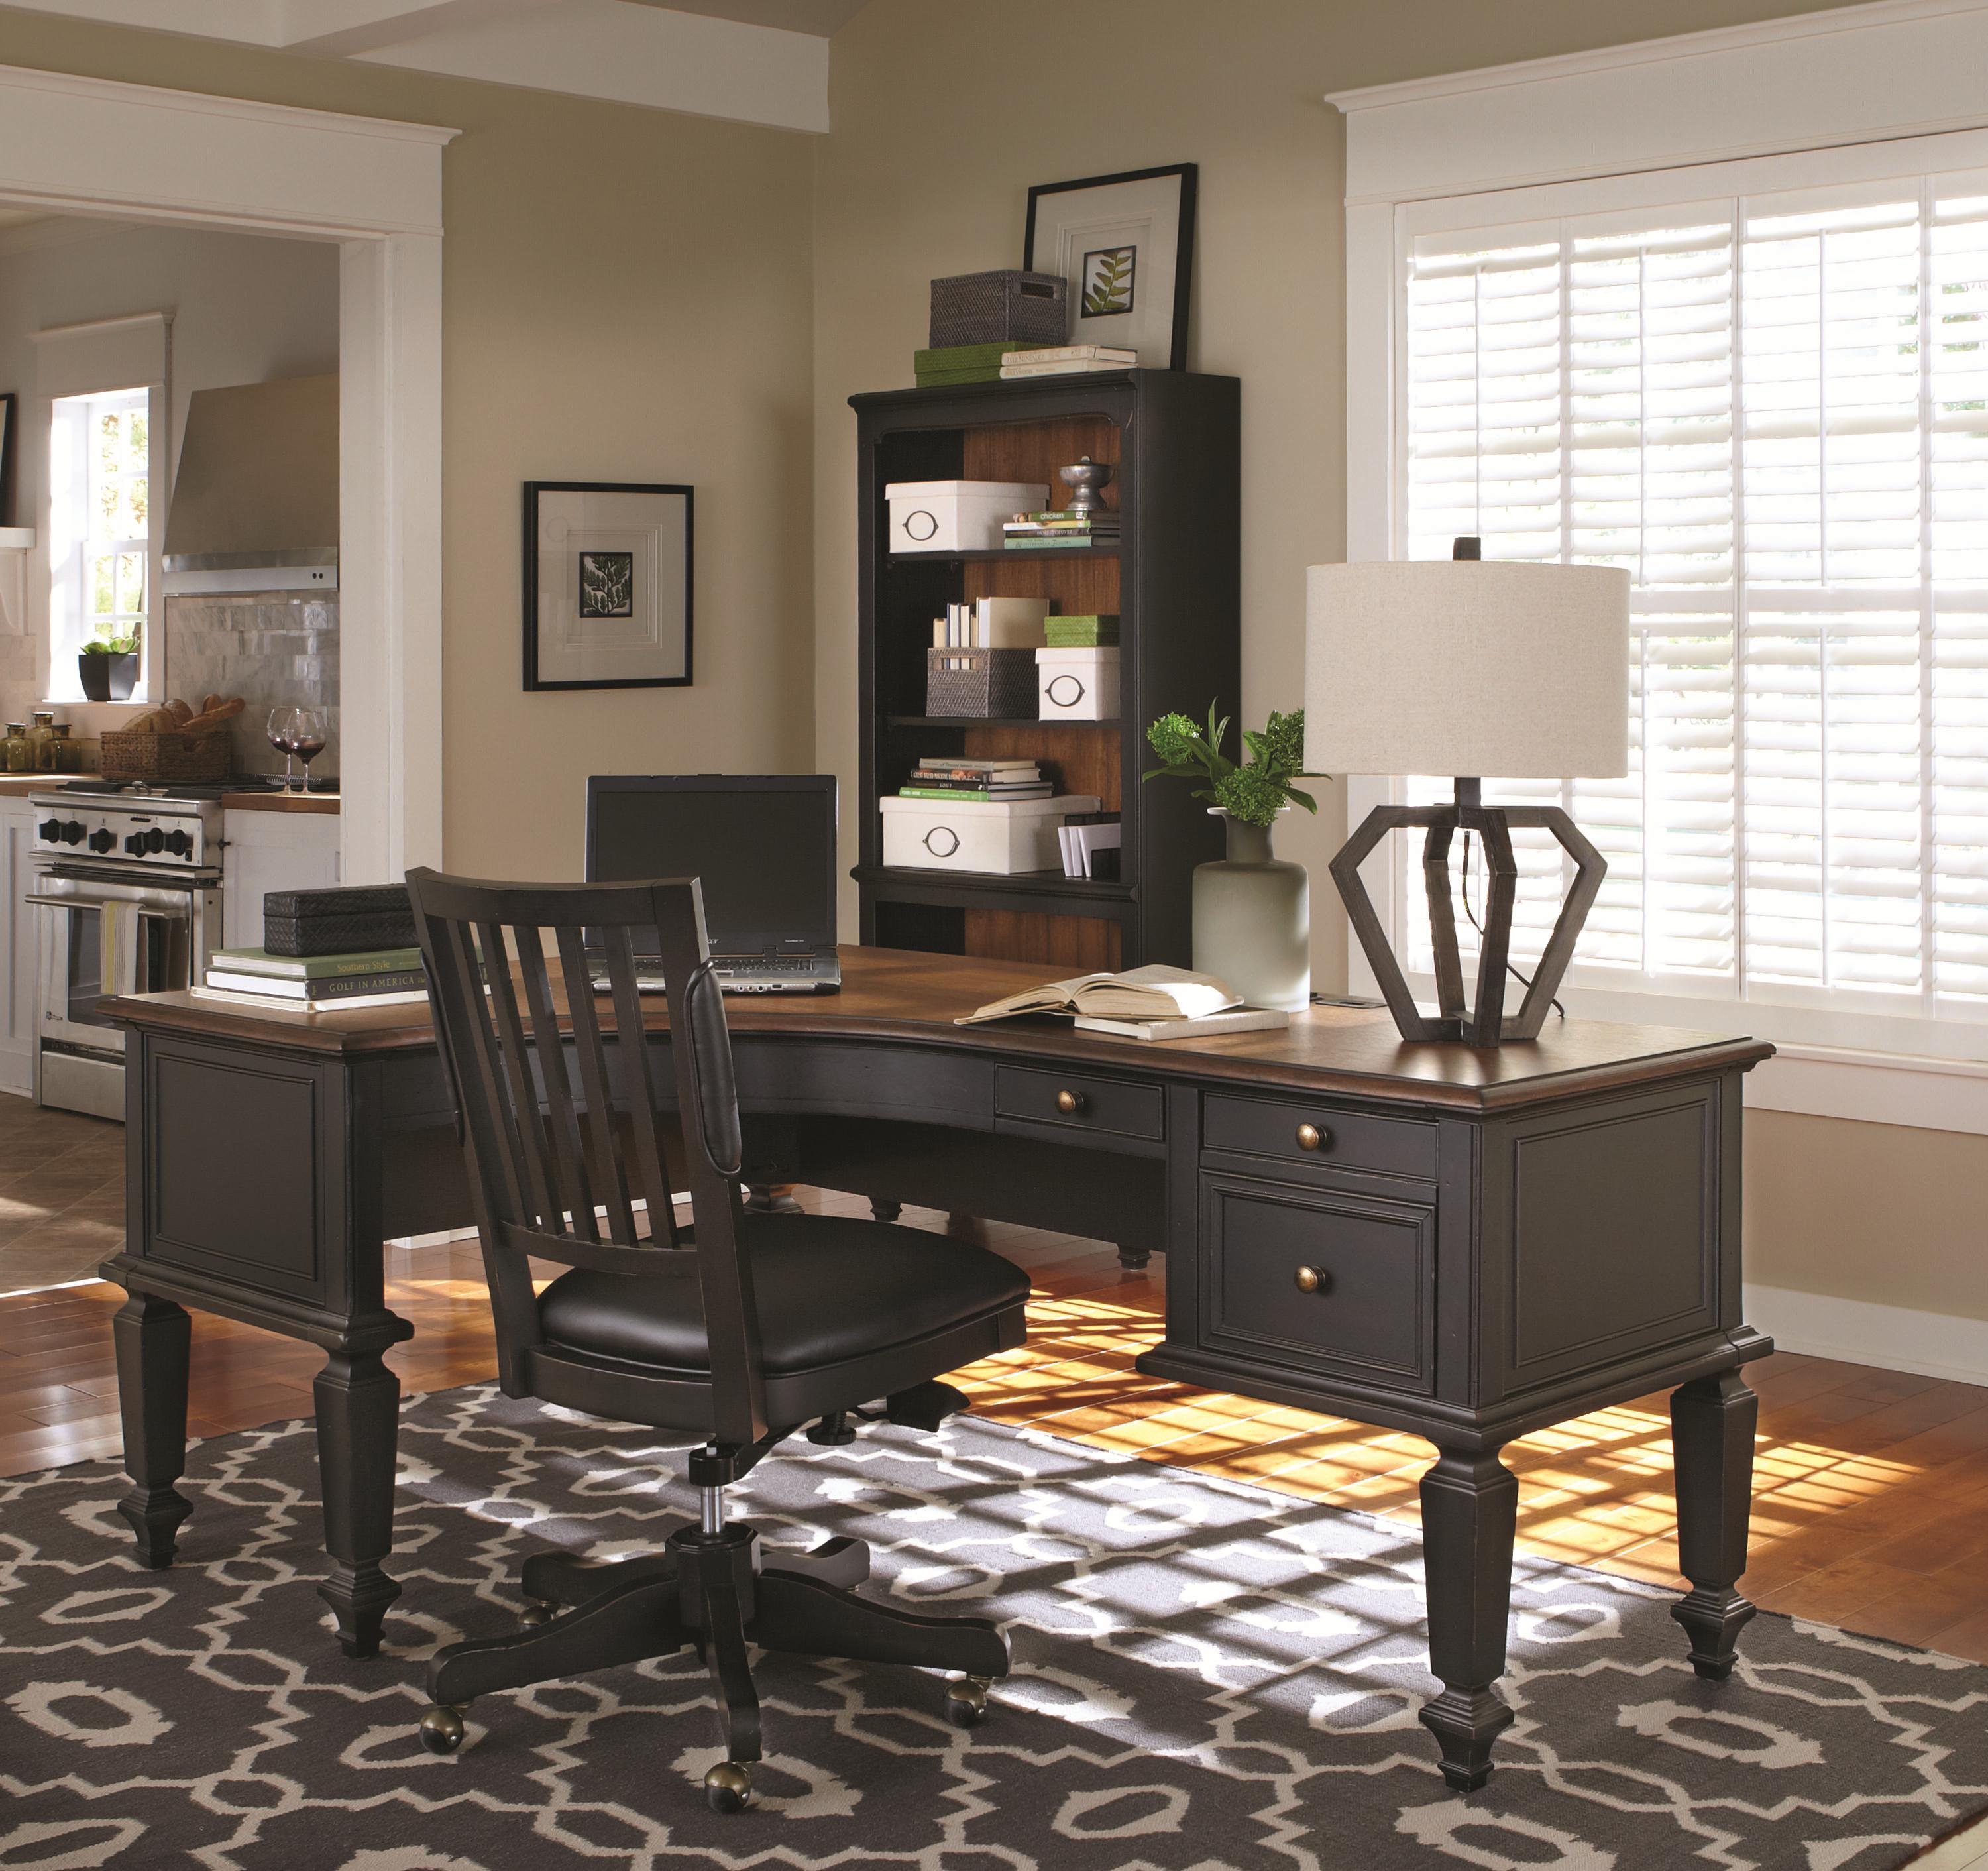 Aspenhome ravenwood office chair with leather seat and five star aspenhome ravenwood office chair with leather seat and five star base wayside furniture office task chairs geotapseo Choice Image